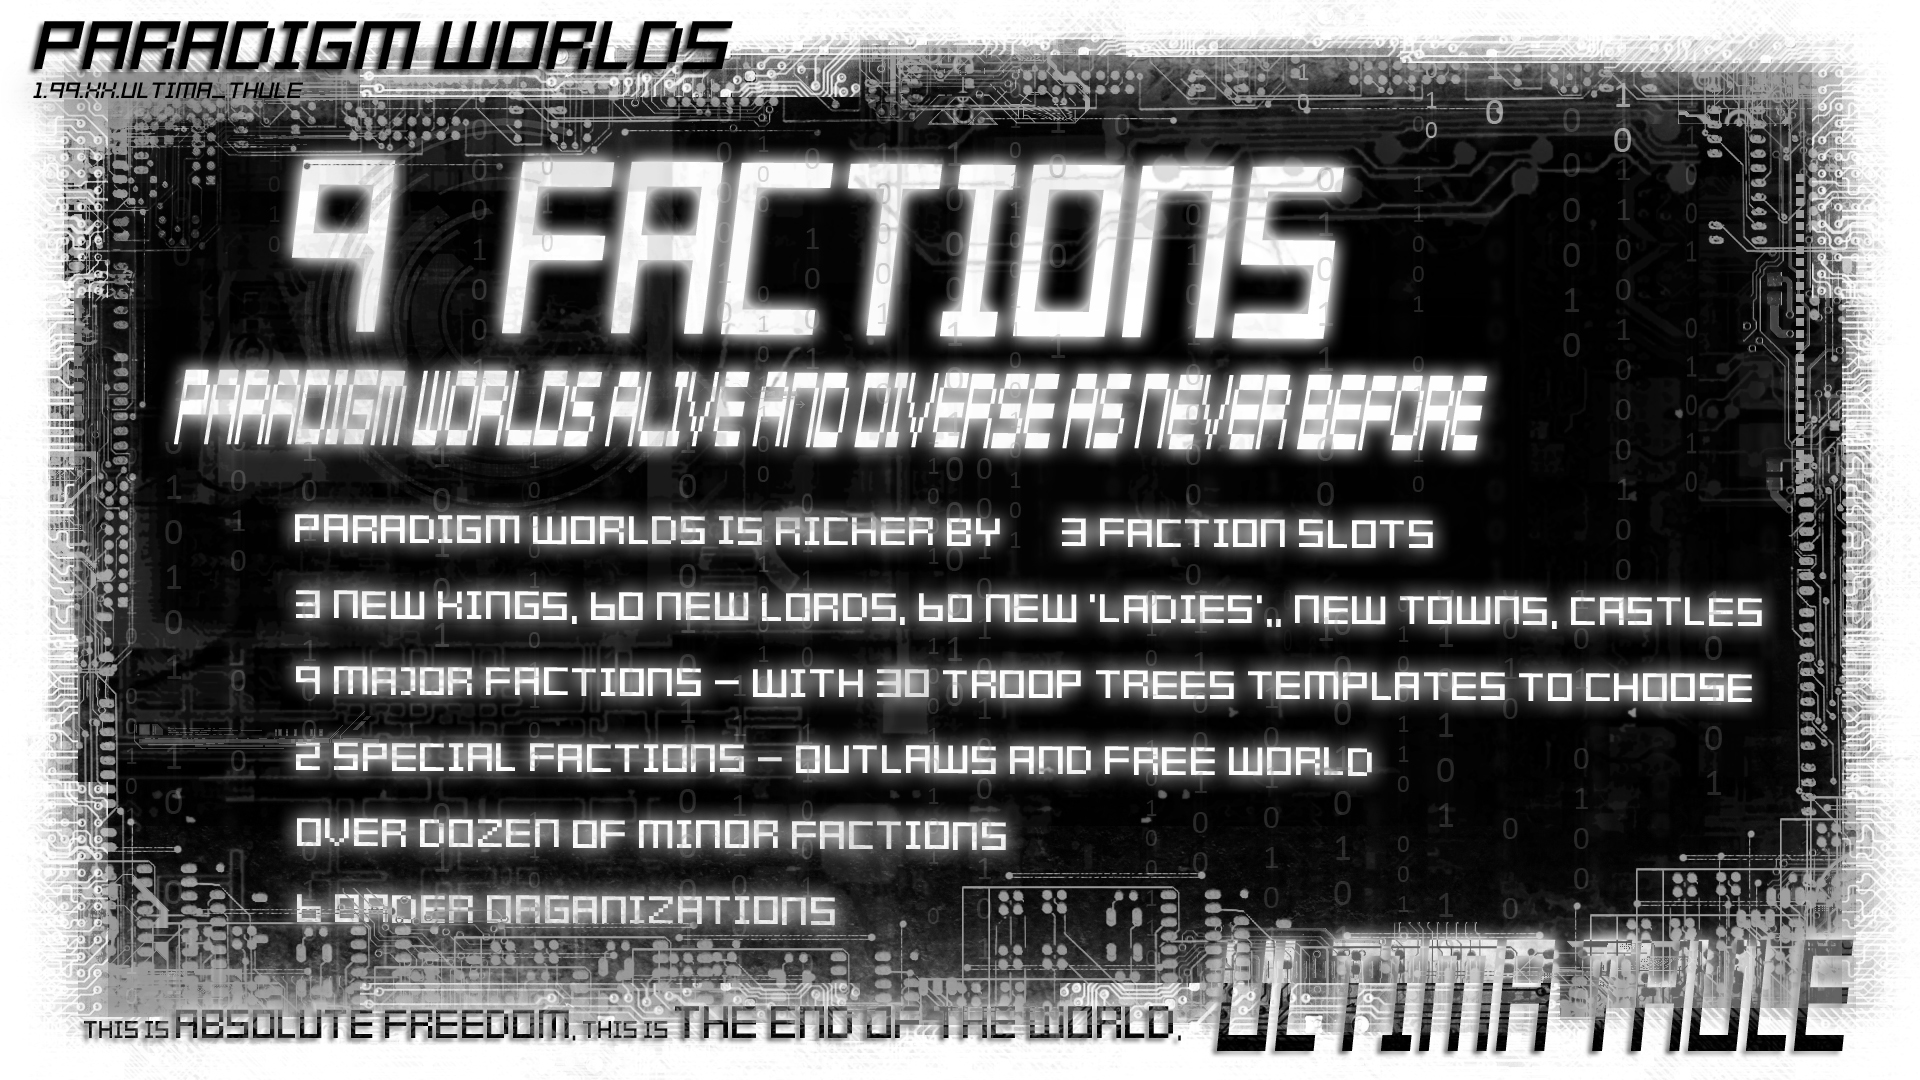 pw ULTIMA THULE a3 9factions sl